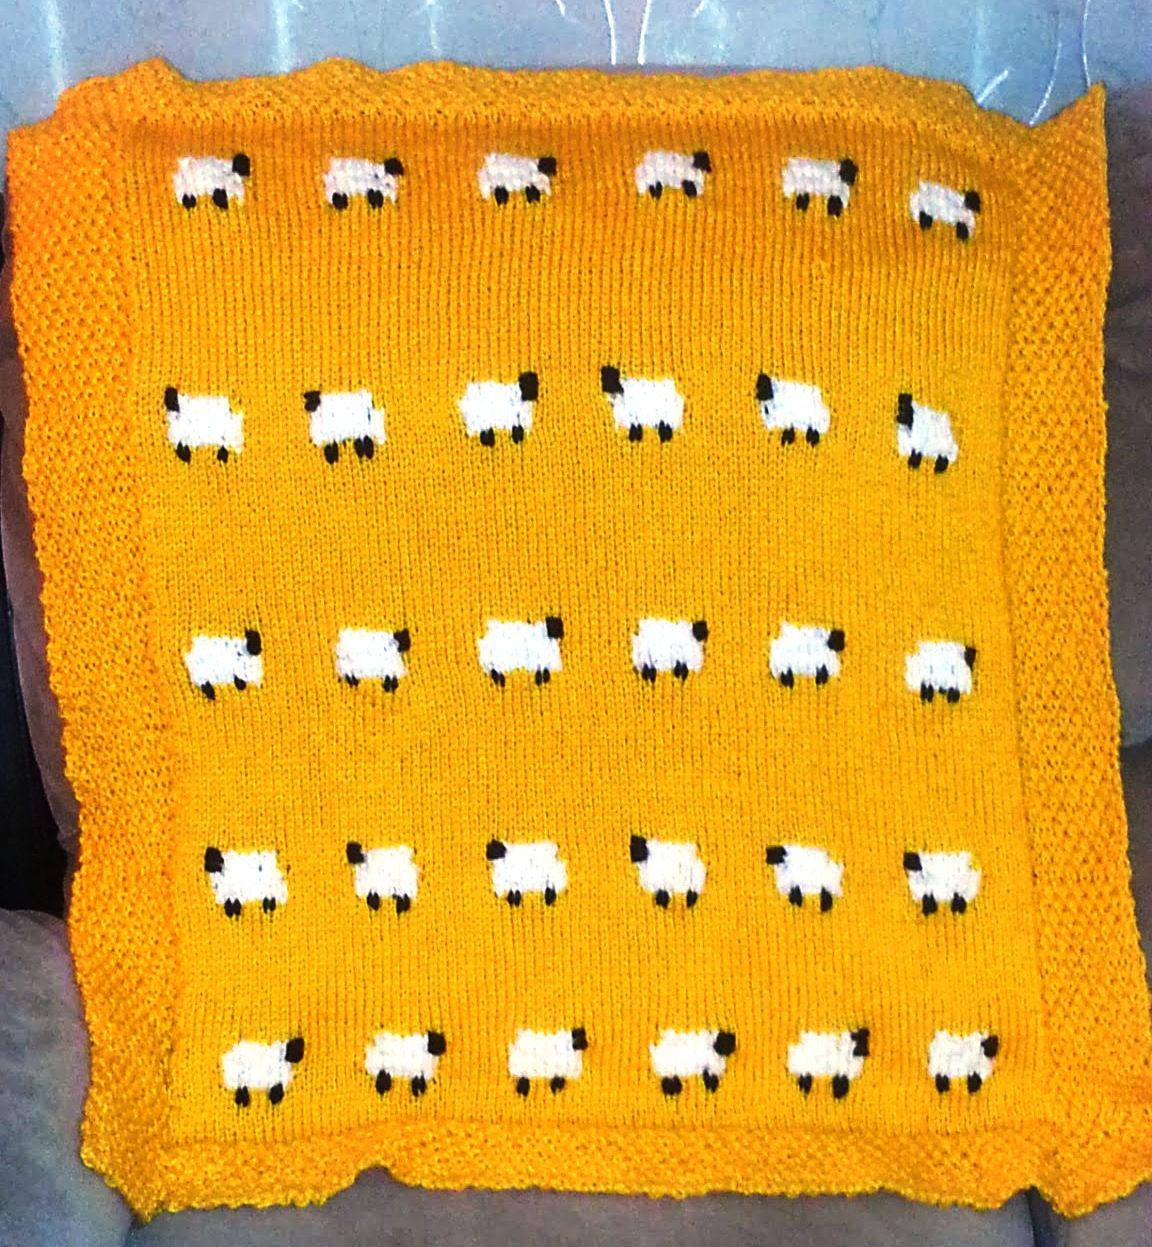 Knitted Baby Blanket Free Knitting Patterns Let S Knit Gallery Photos Baby ...